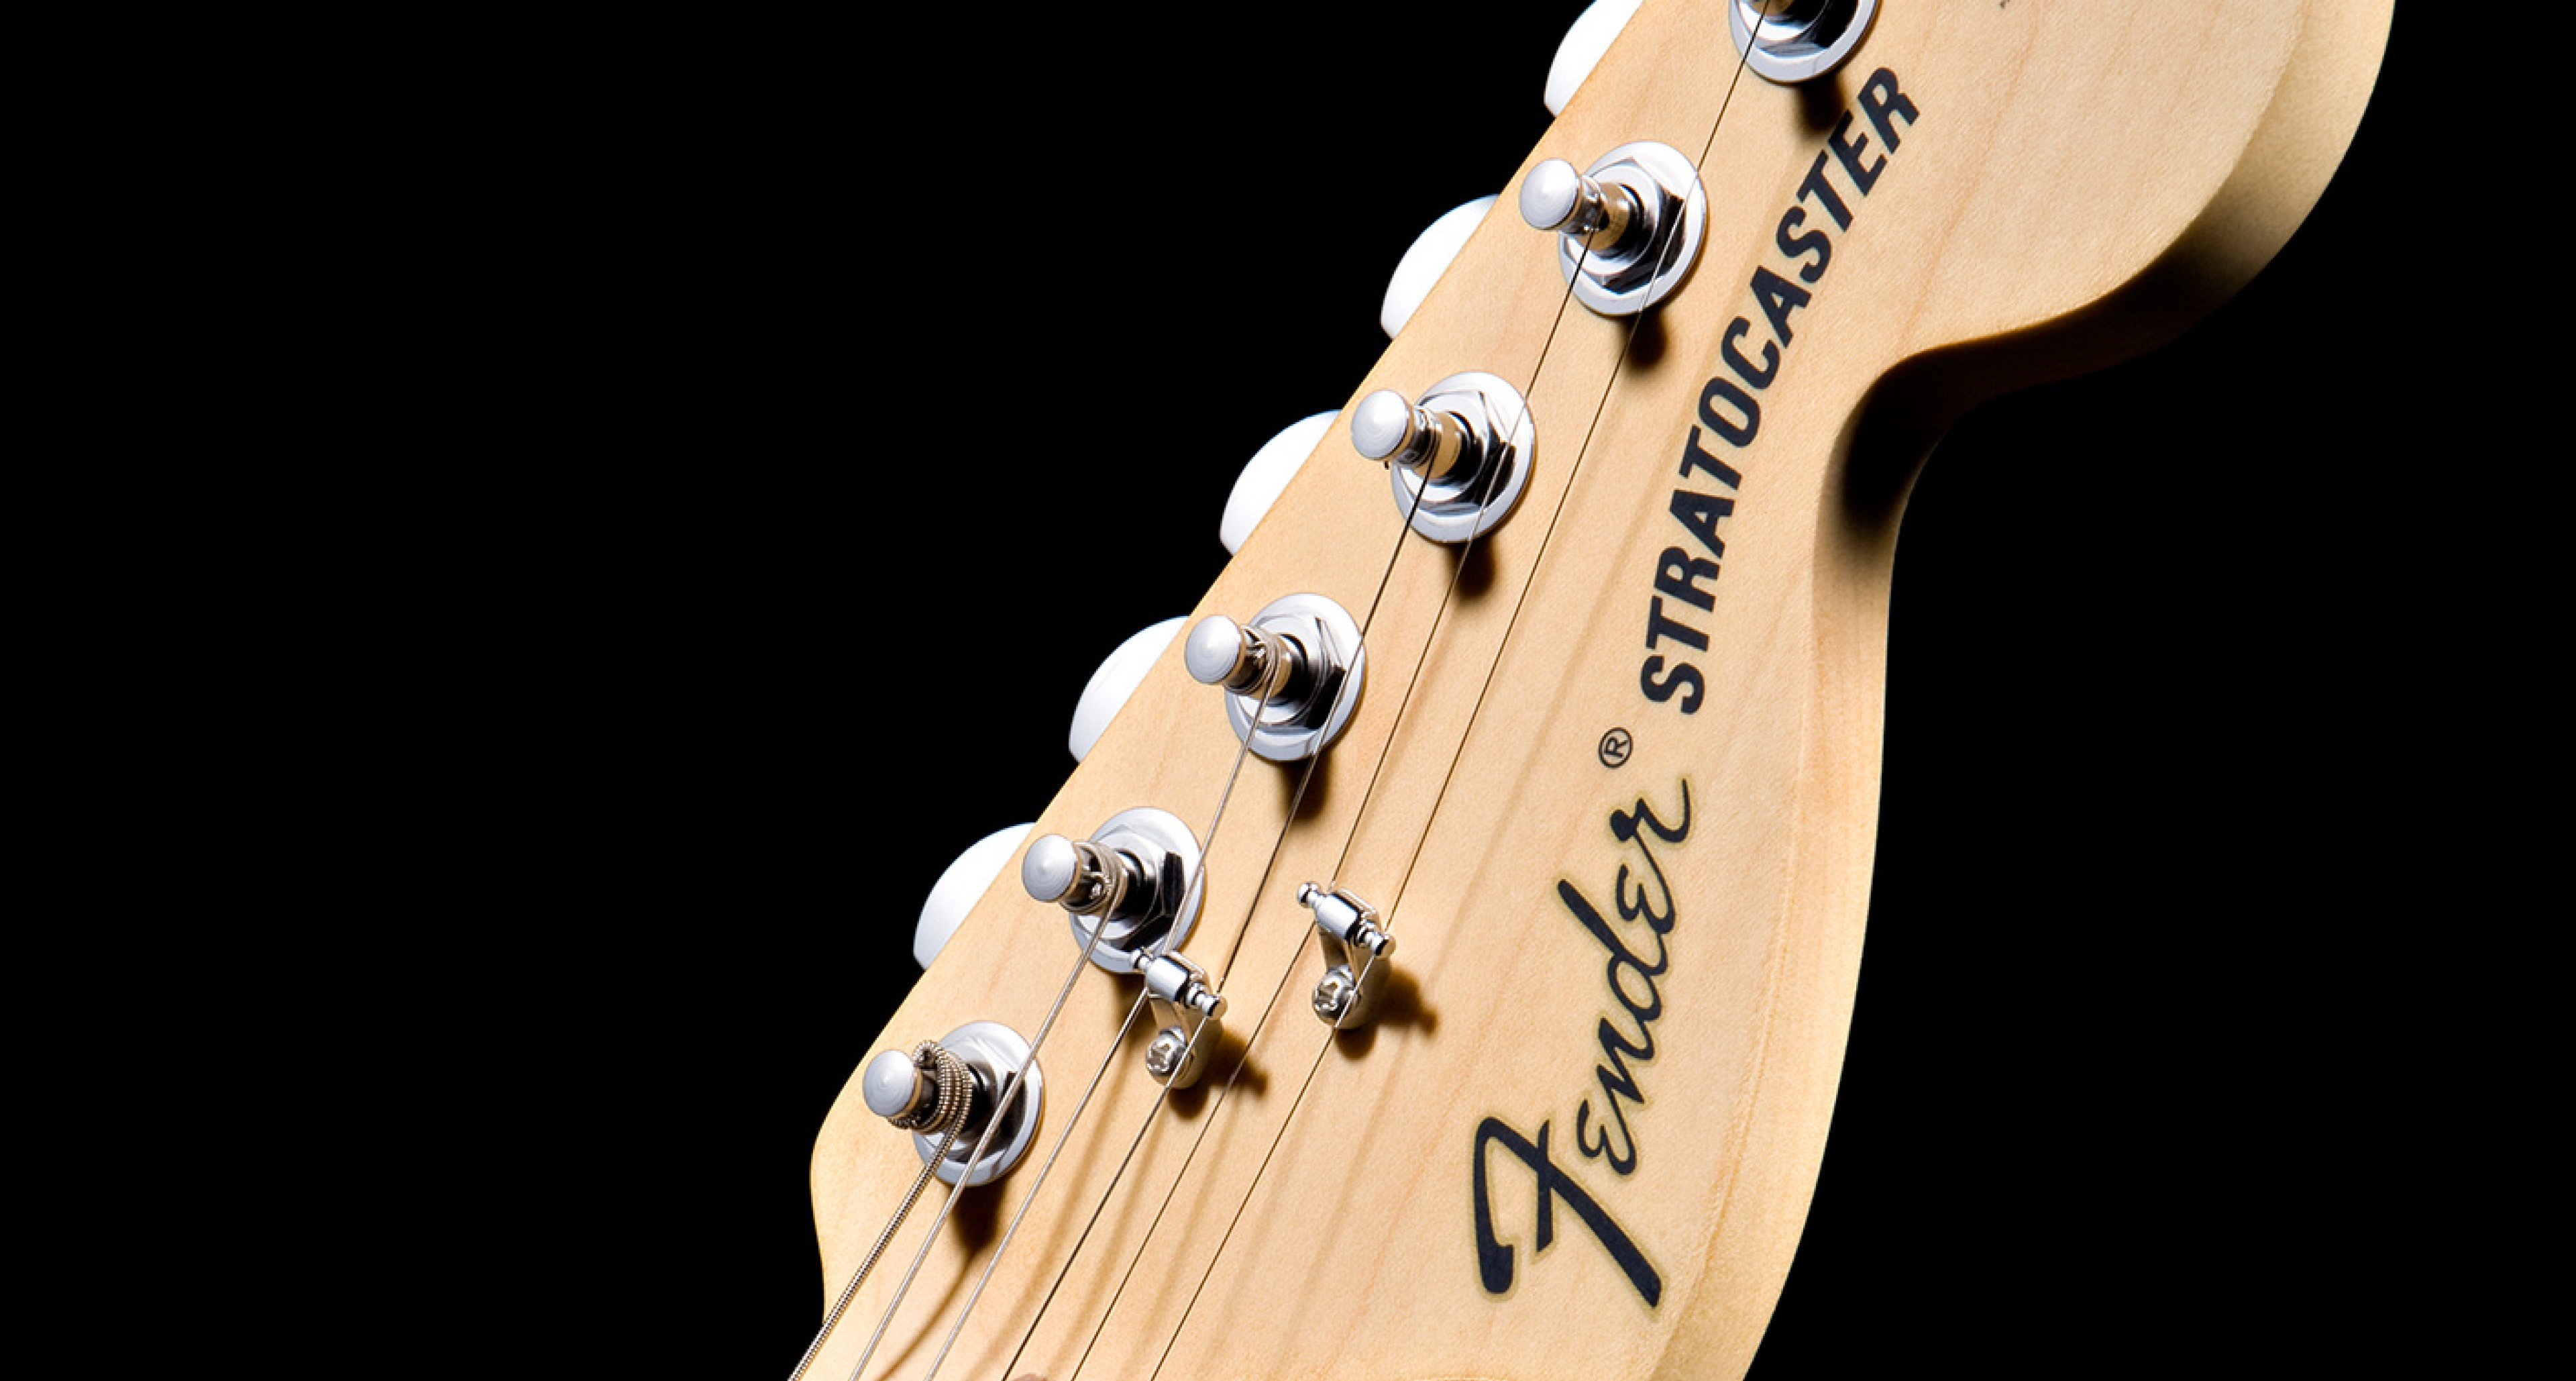 60 years of the Fender Stratocaster